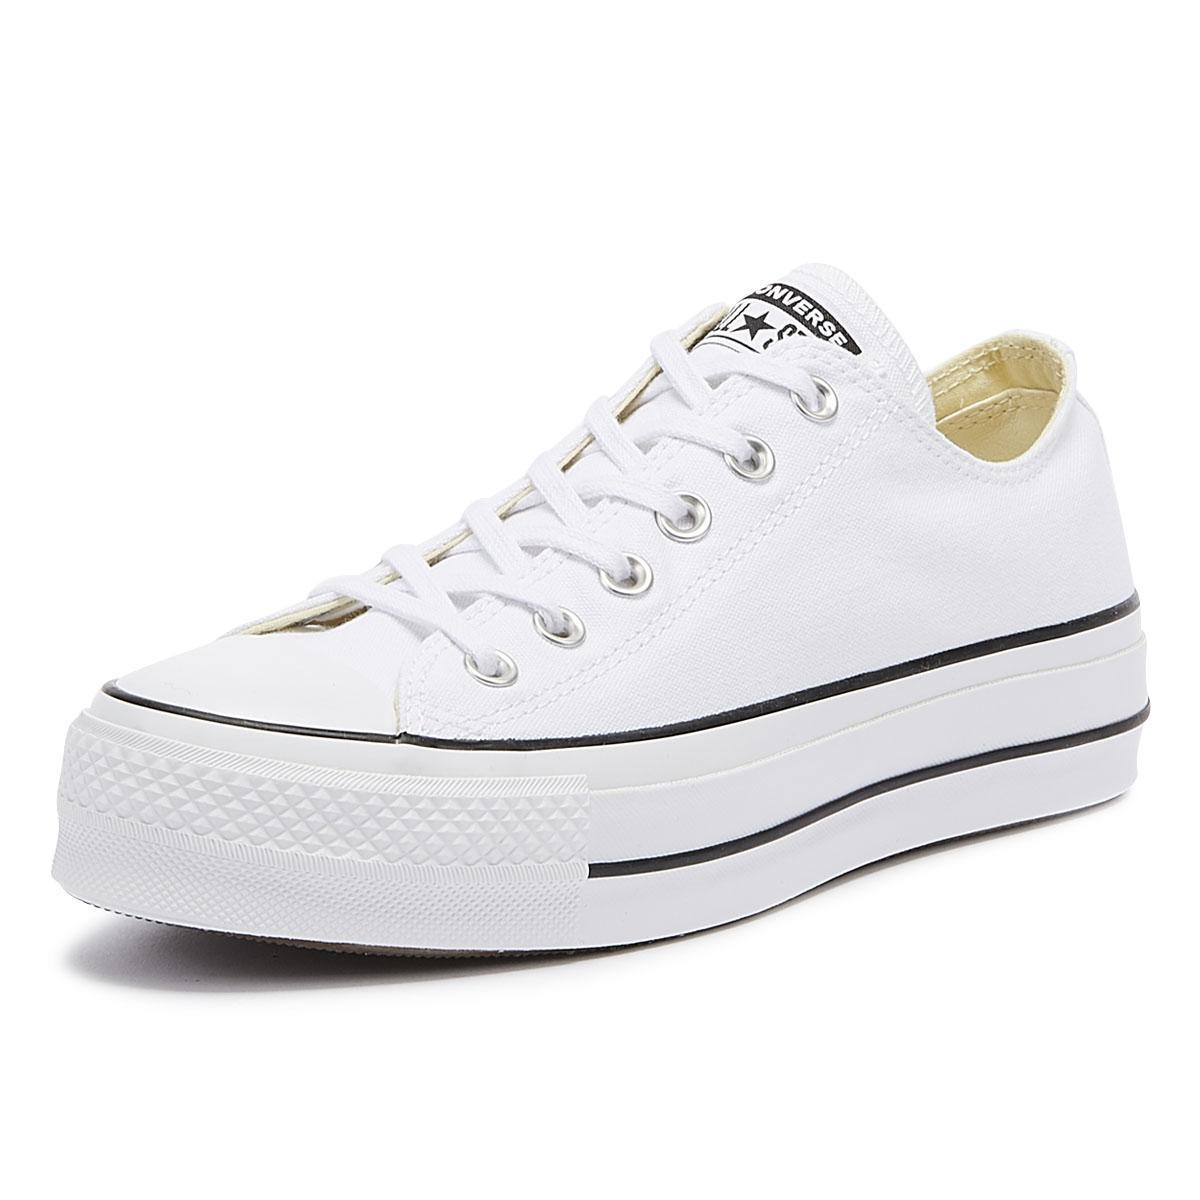 00138a1e3be995 Converse - Chuck Taylor All Star Lift Womens White Ox Trainers - Lyst. View  fullscreen